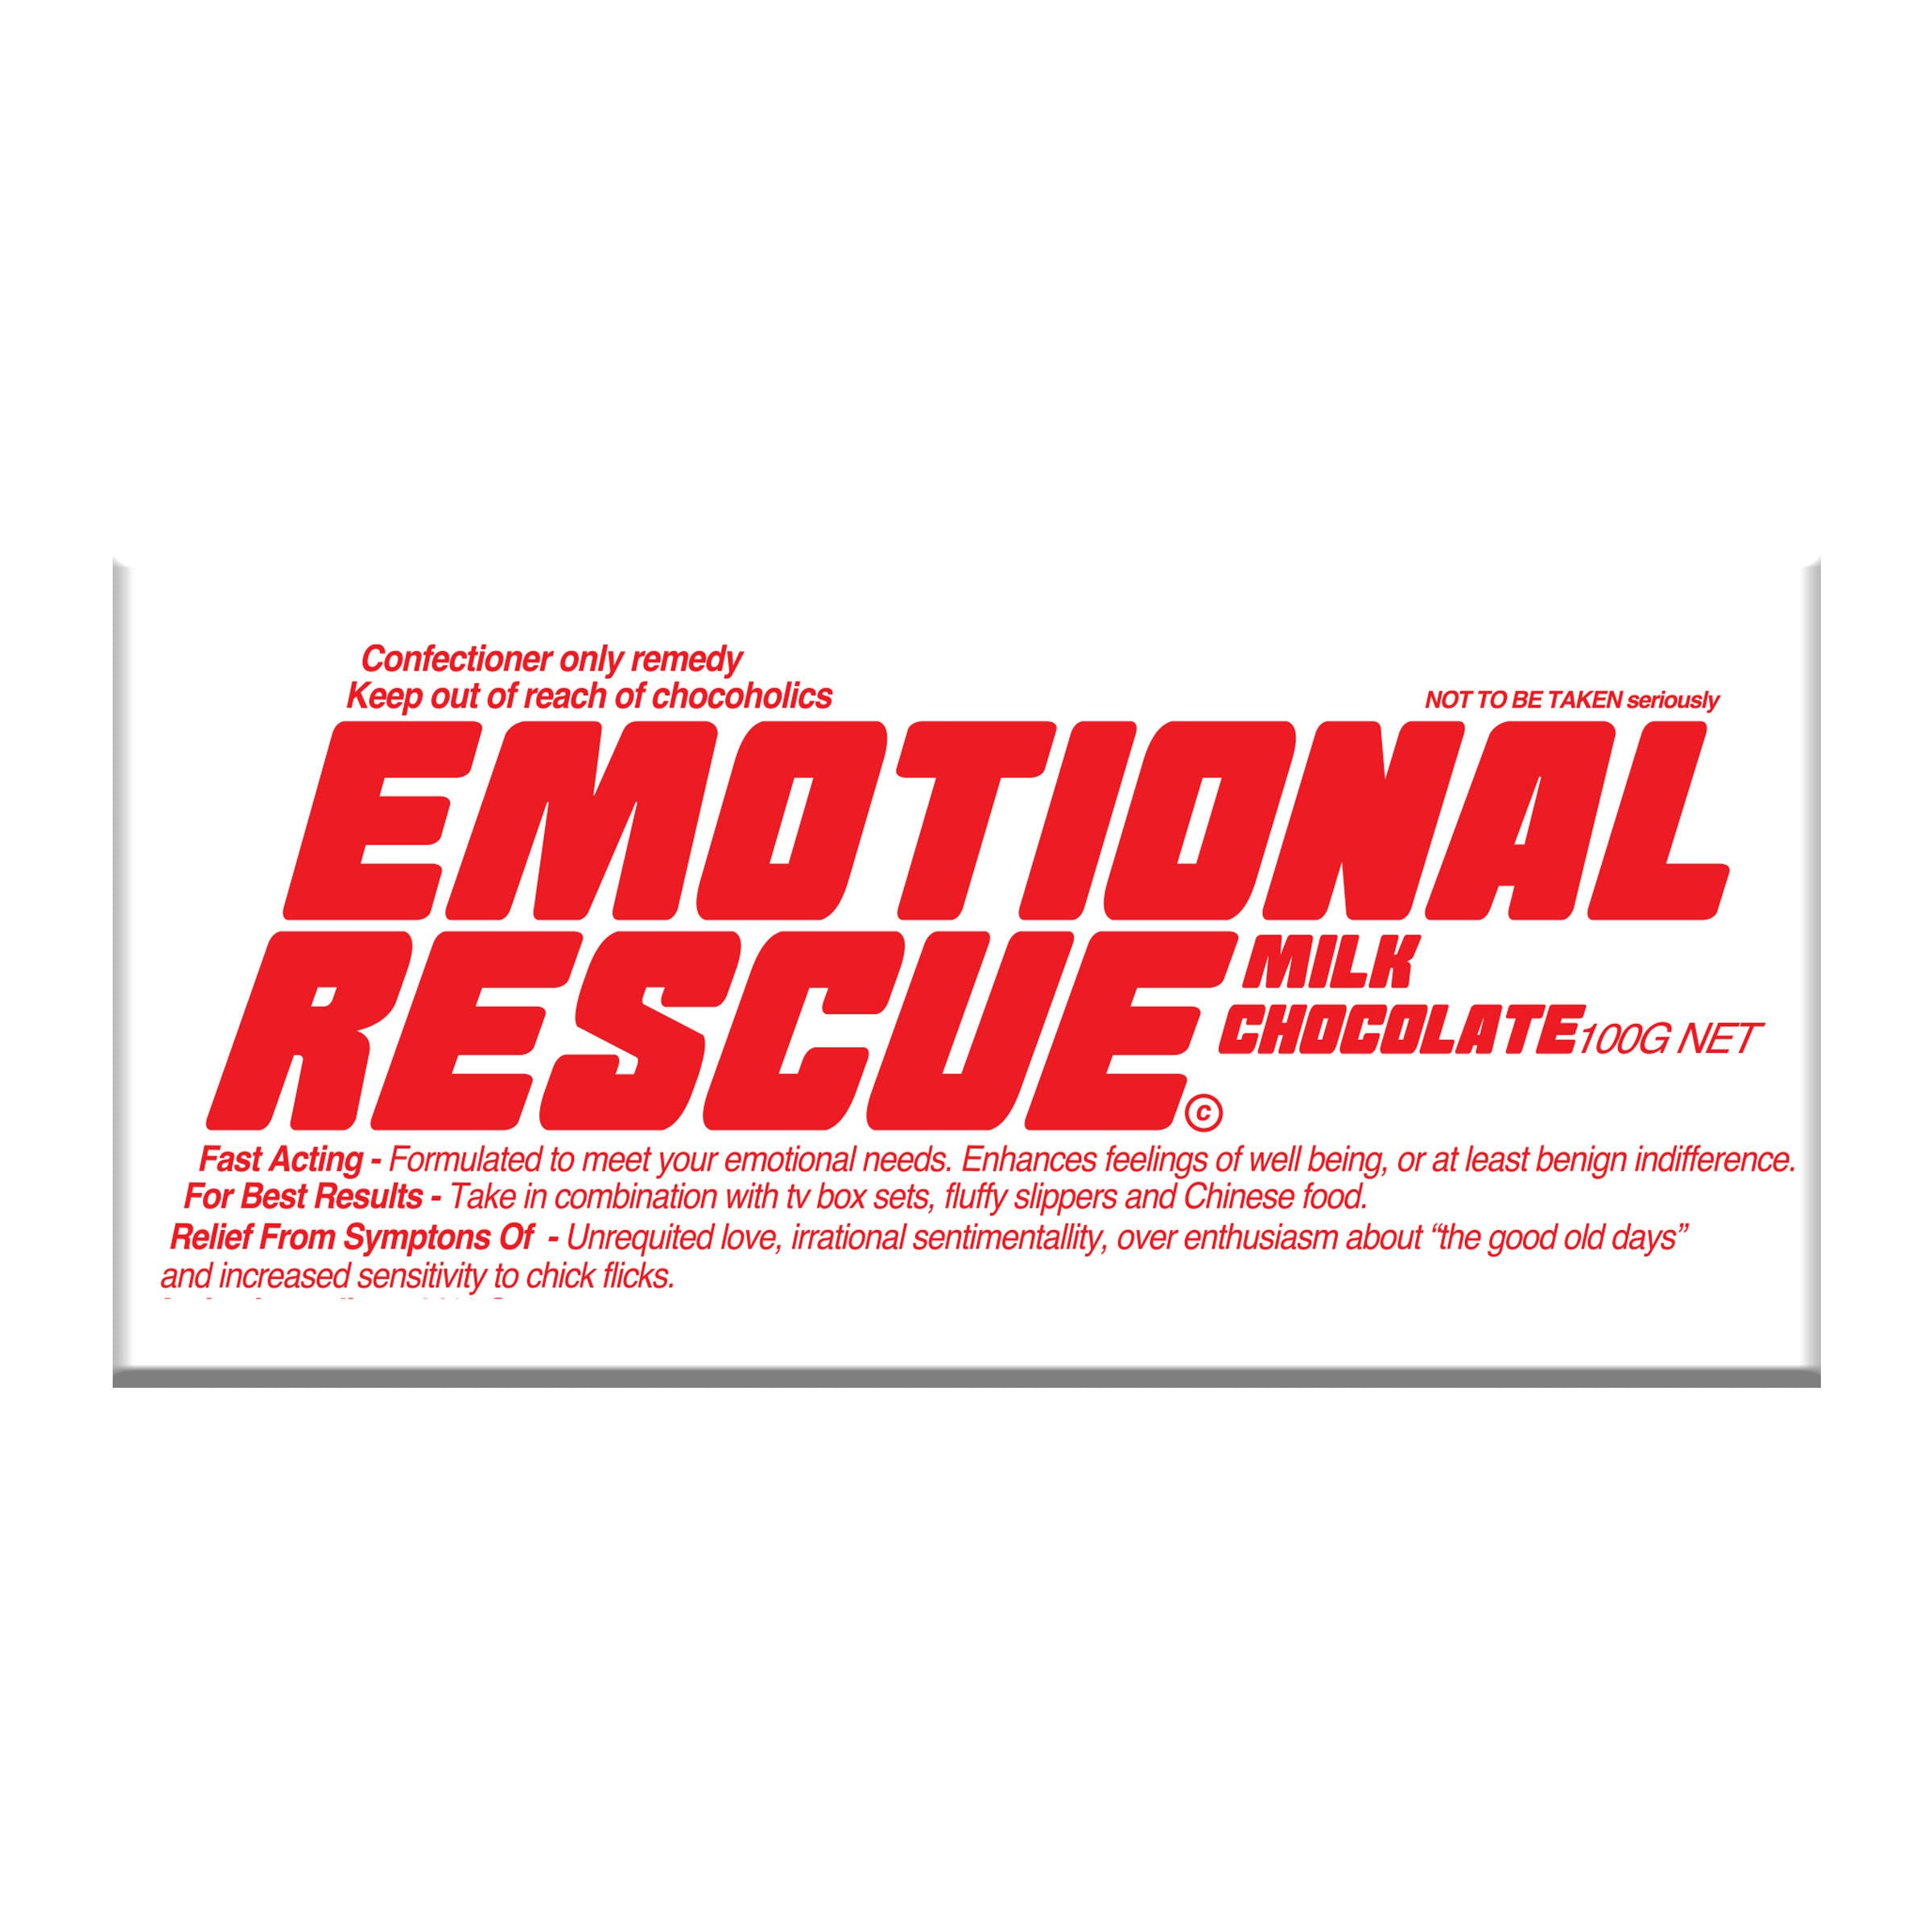 BellaBerry - Emotional Rescue Milk Chocolate - last minute gift idea - melbourne